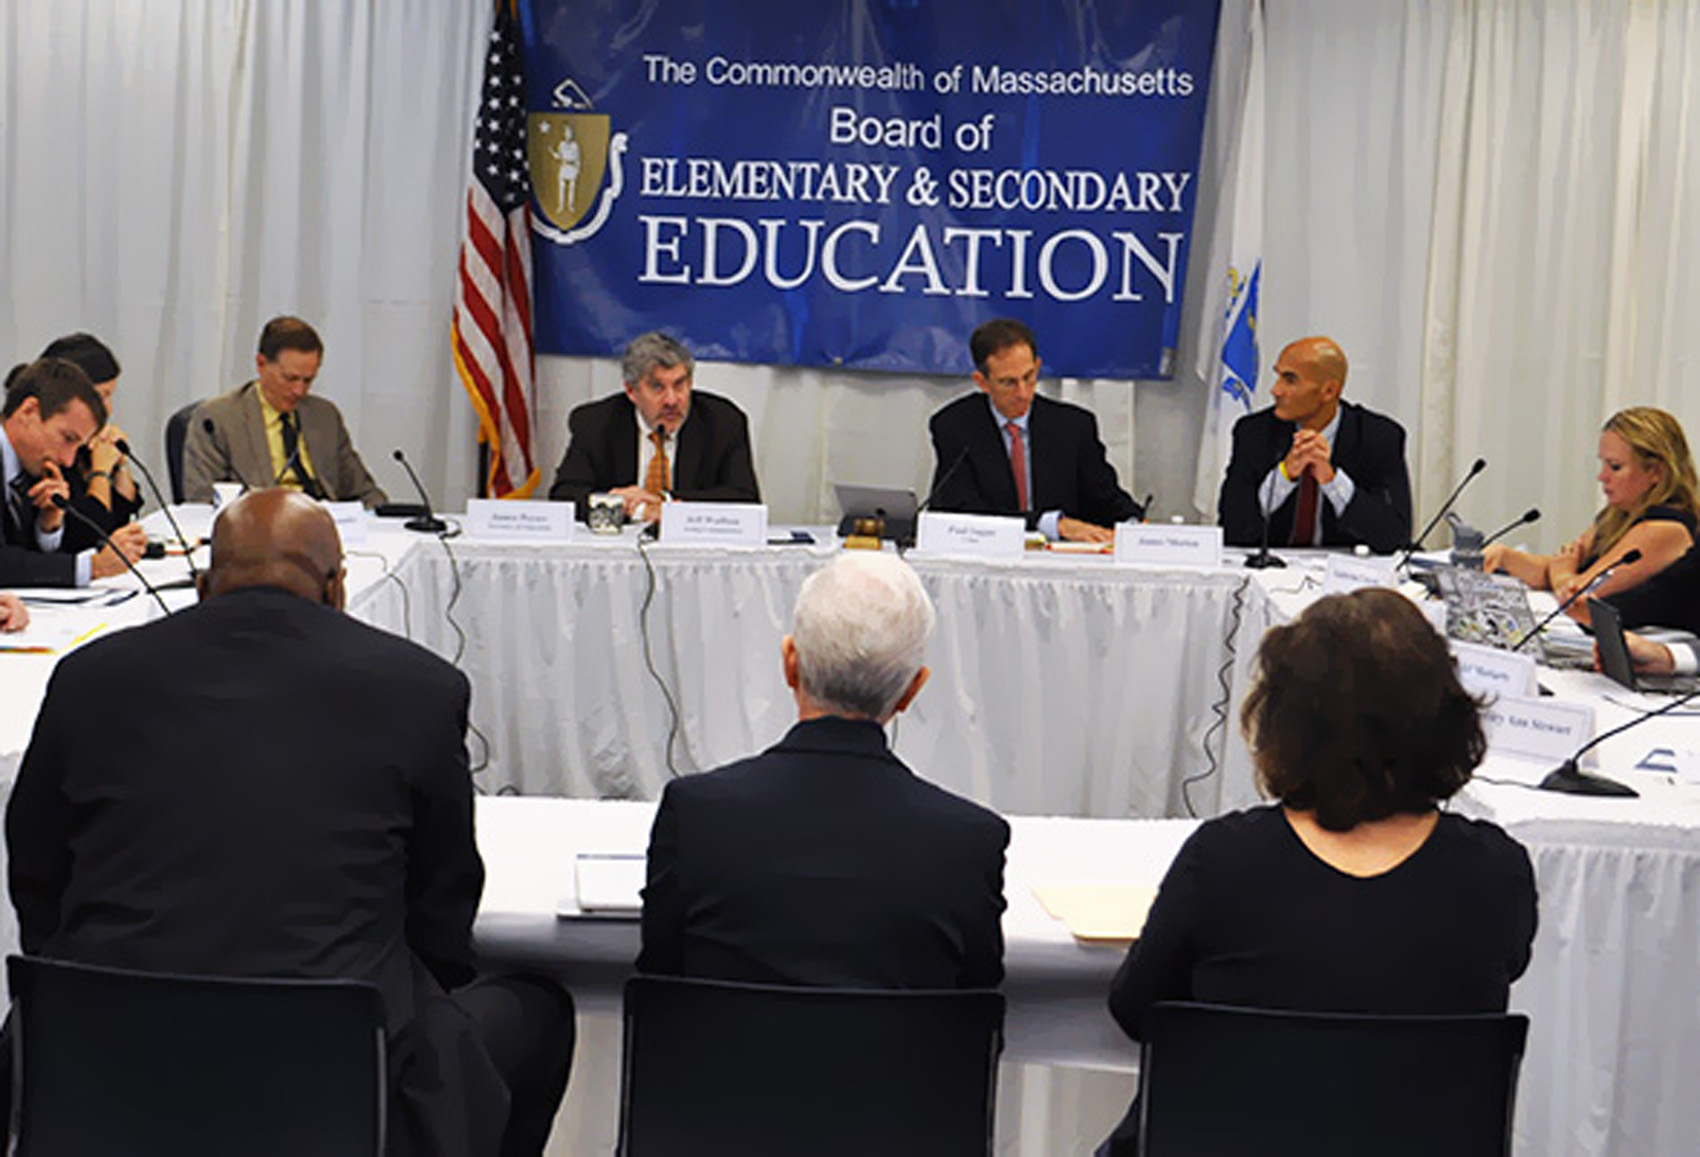 Members of the Massachusetts Board of Elementary and Secondary Education. (Courtesy of the department)